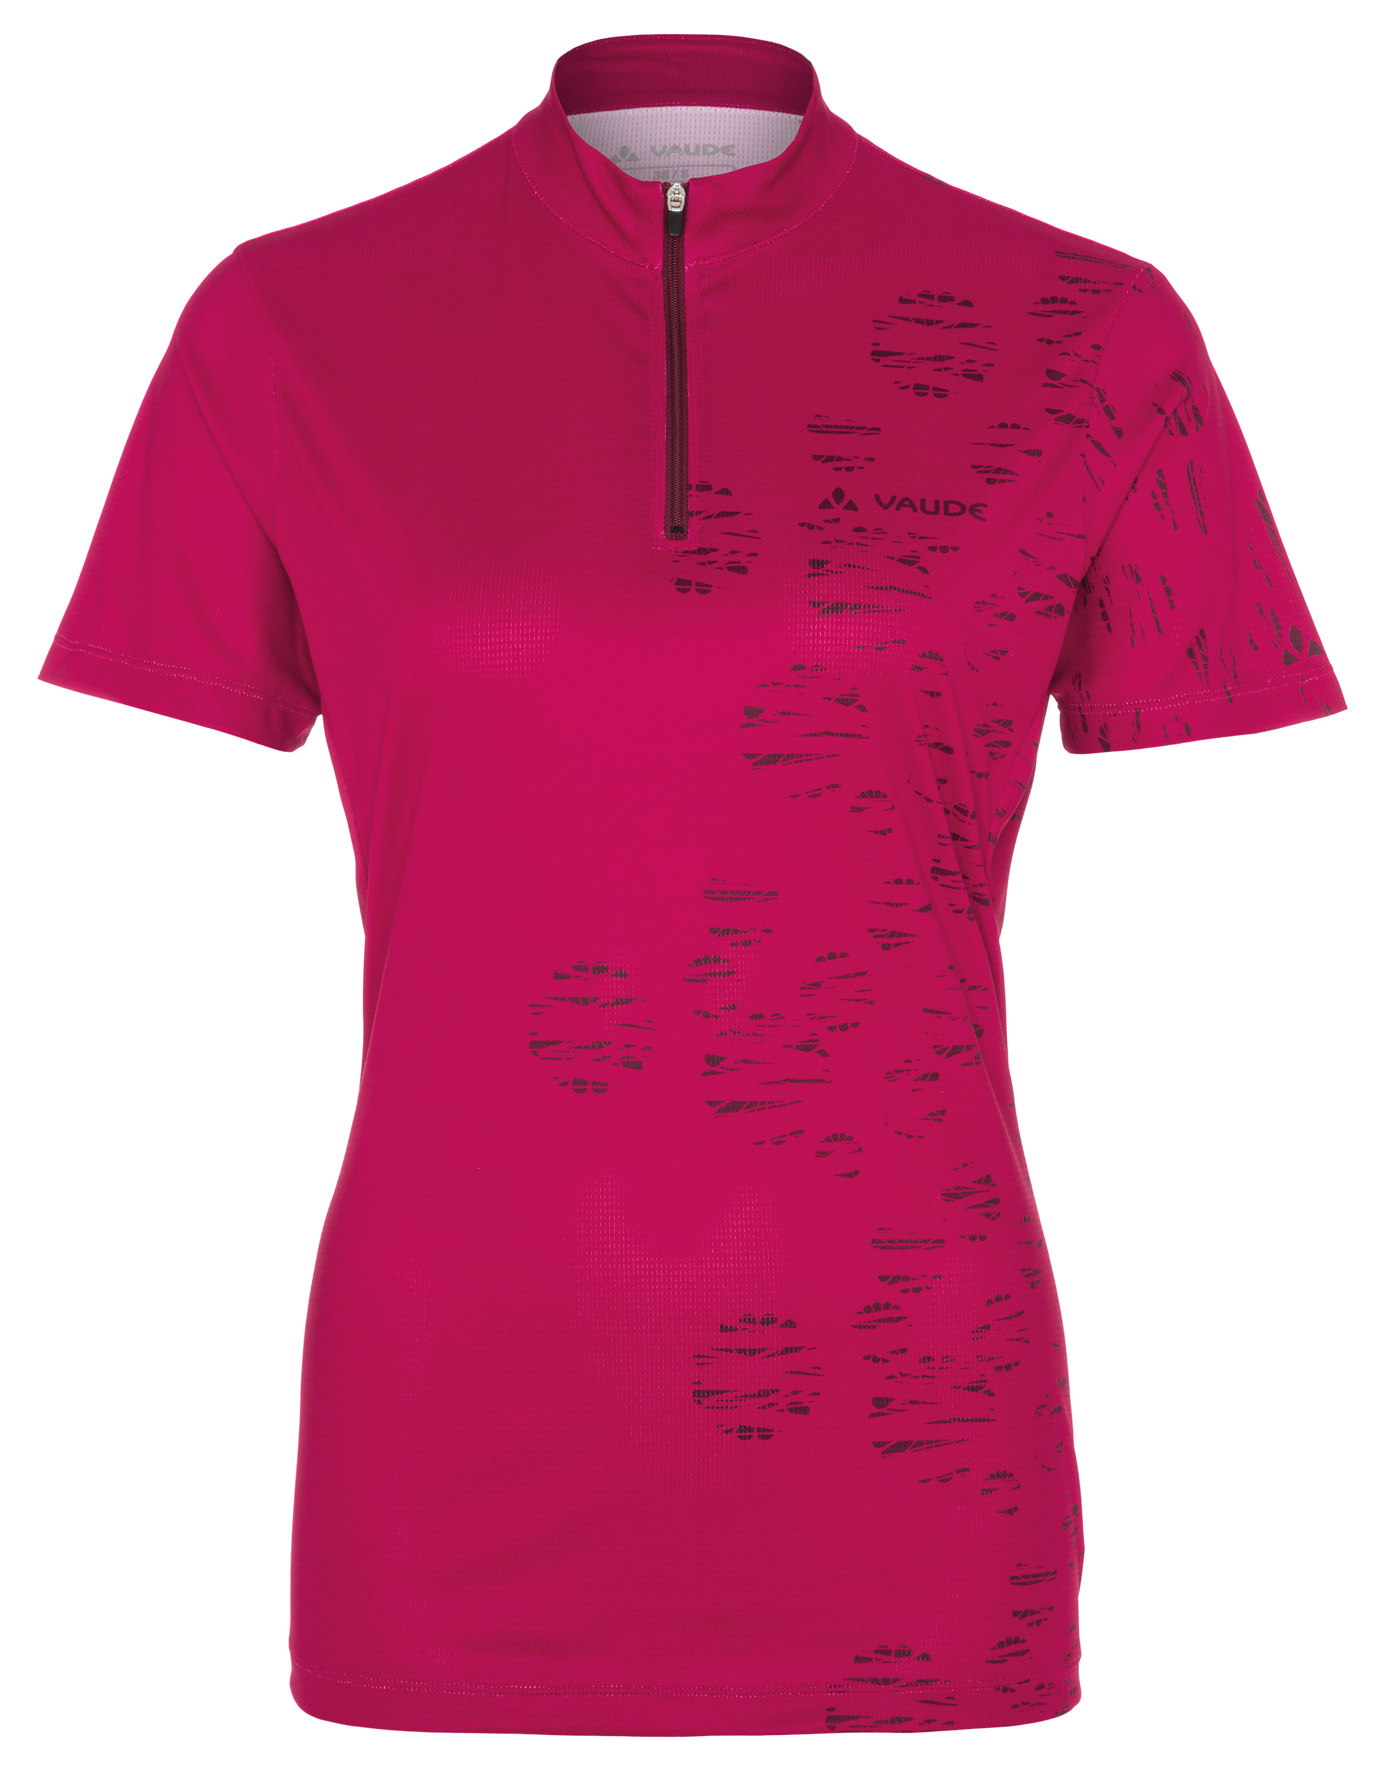 Women´s Tremalzo Shirt grenadine Größe 38 - schneider-sports